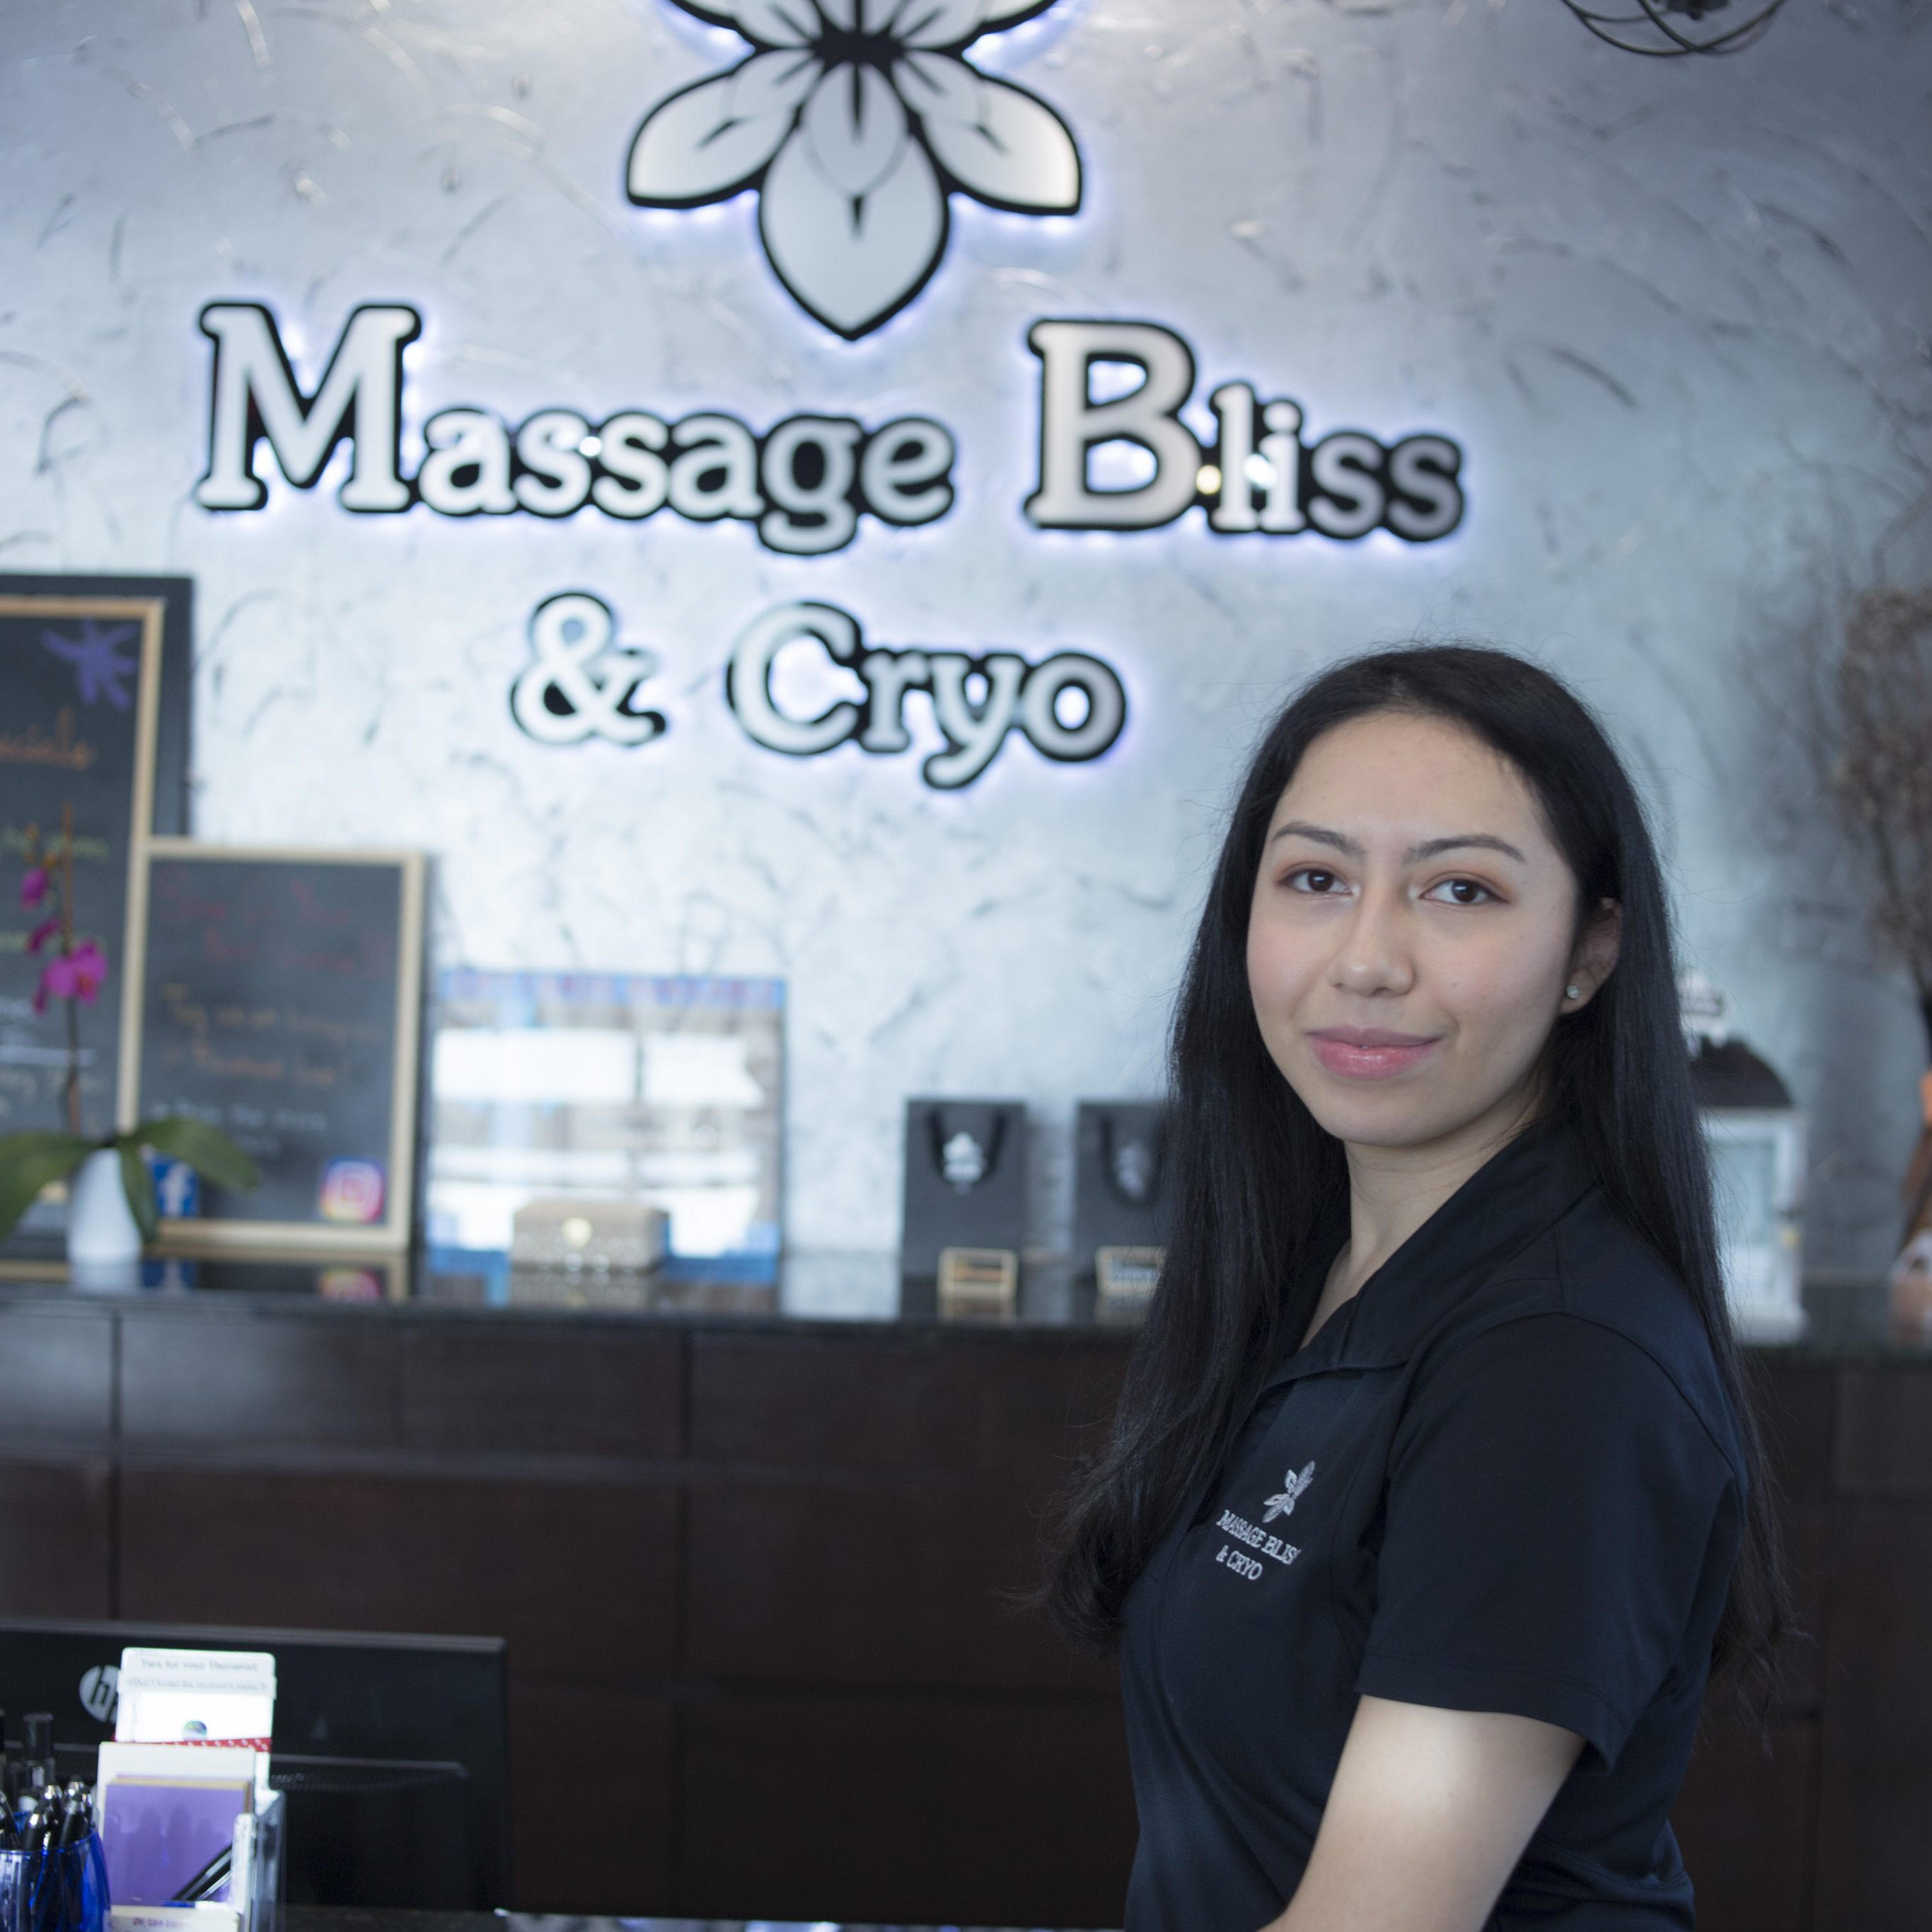 Massage Bliss- Abby